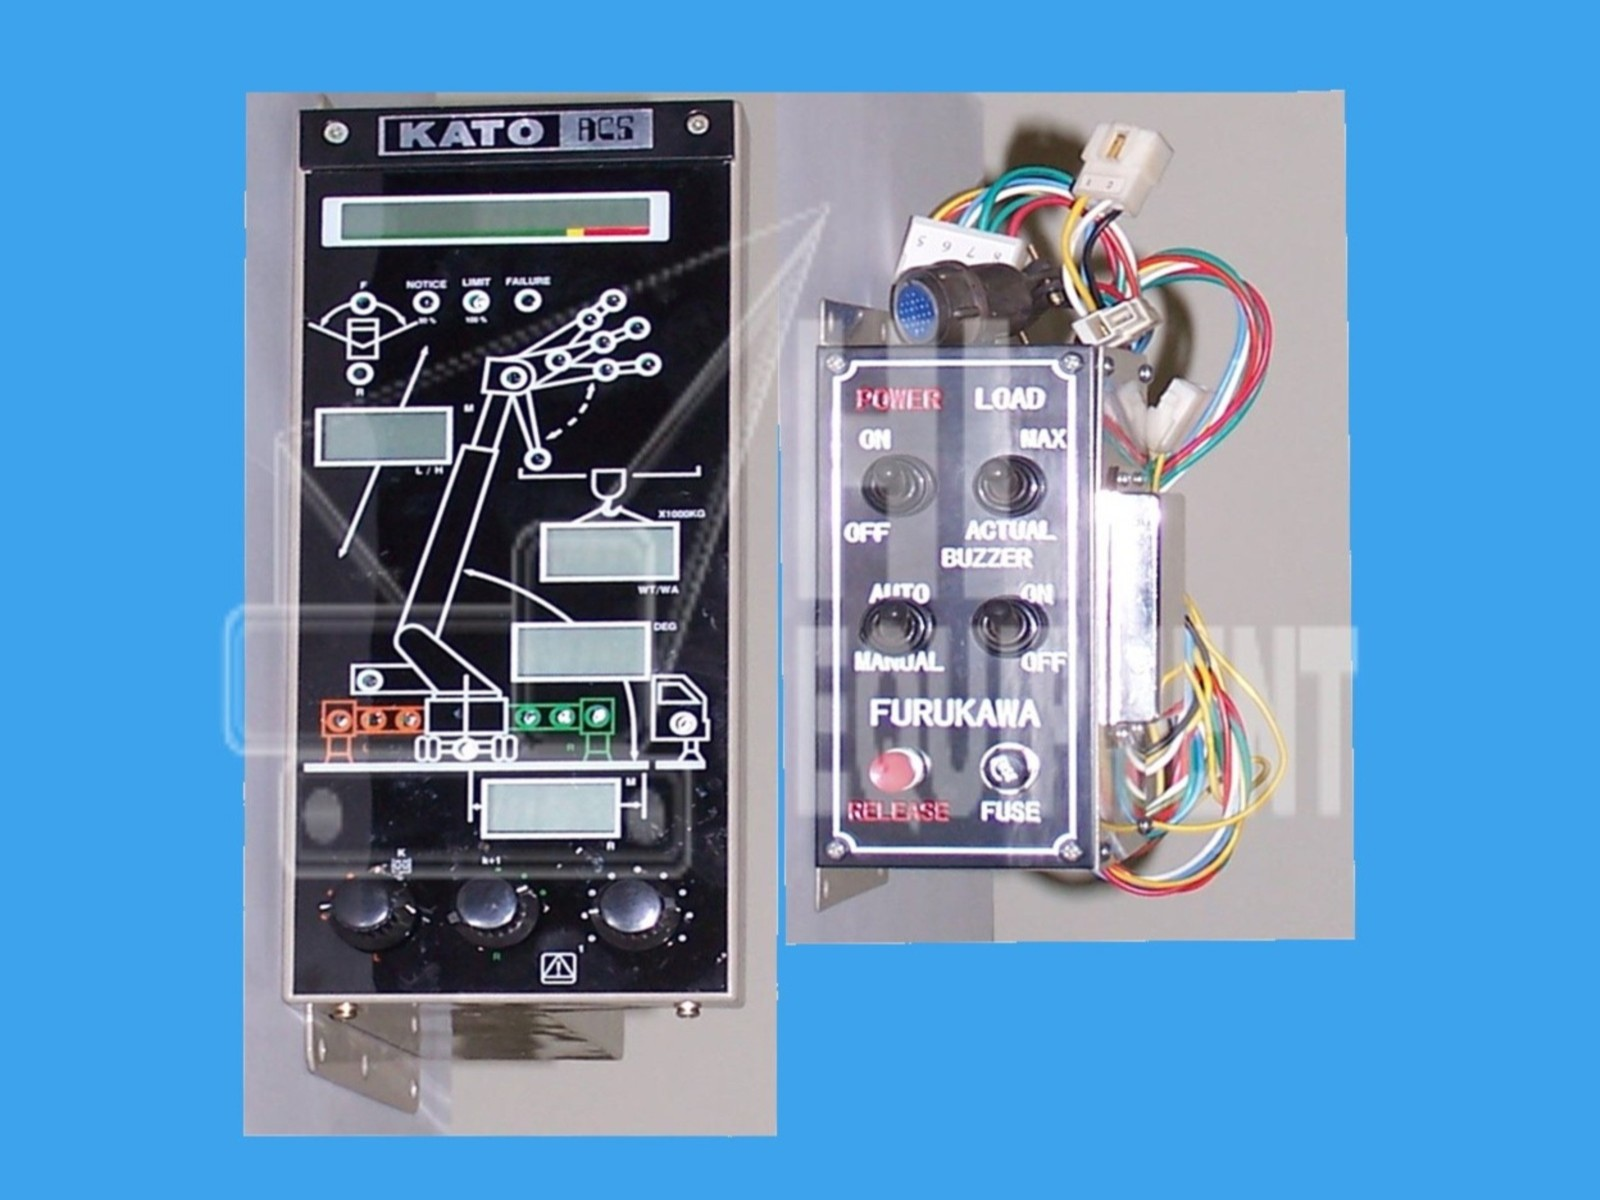 Kato Generator Wiring Diagram And Electrical Schematic Electronics Components Crane Spares Parts Rh Com Diagrams All